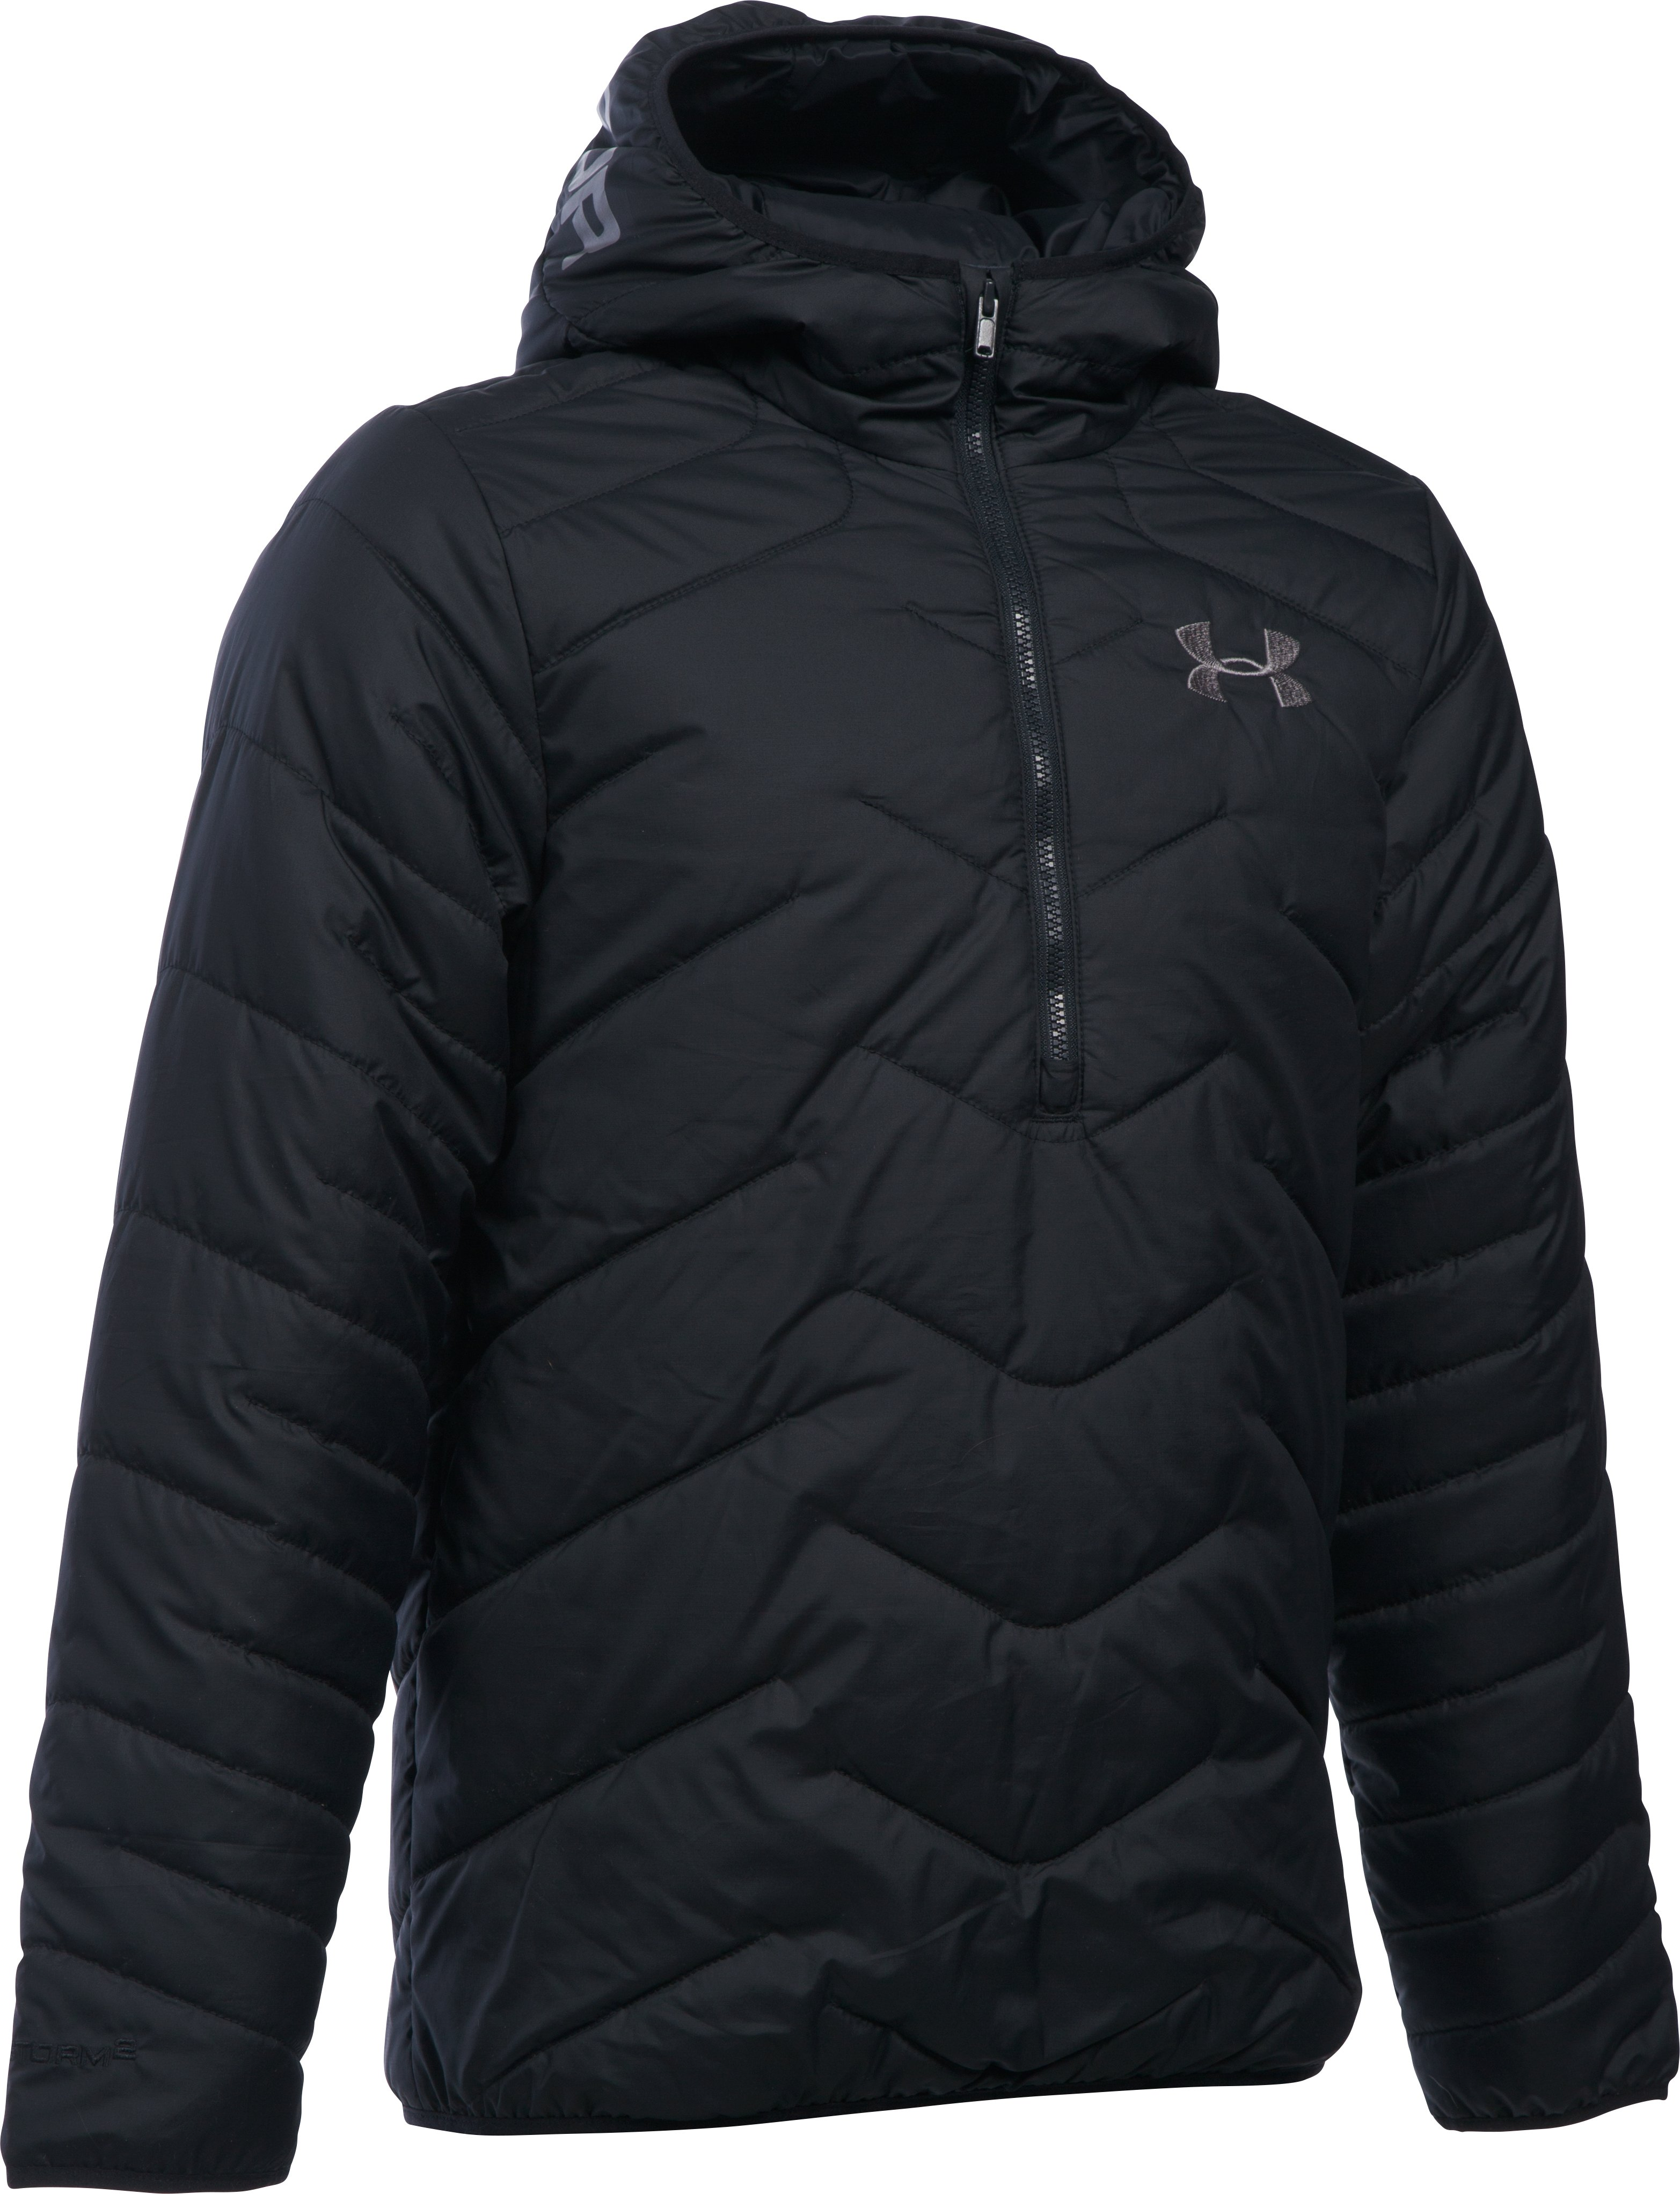 Boys' ColdGear® Reactor Anorak Jacket, Black